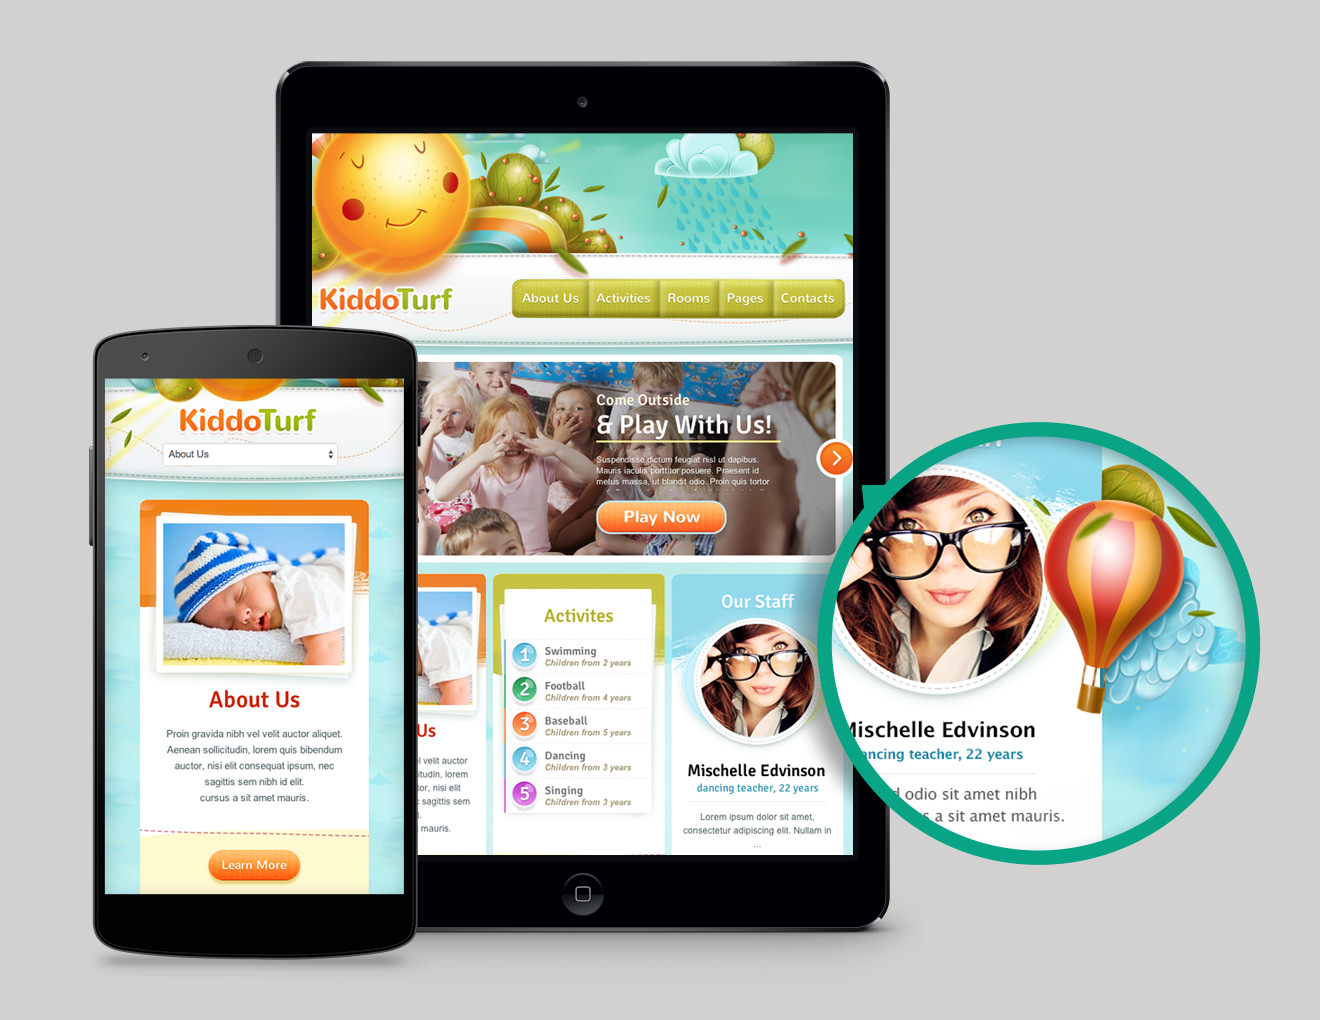 kiddoturf2 - KiddoTurf - Kids WordPress Theme